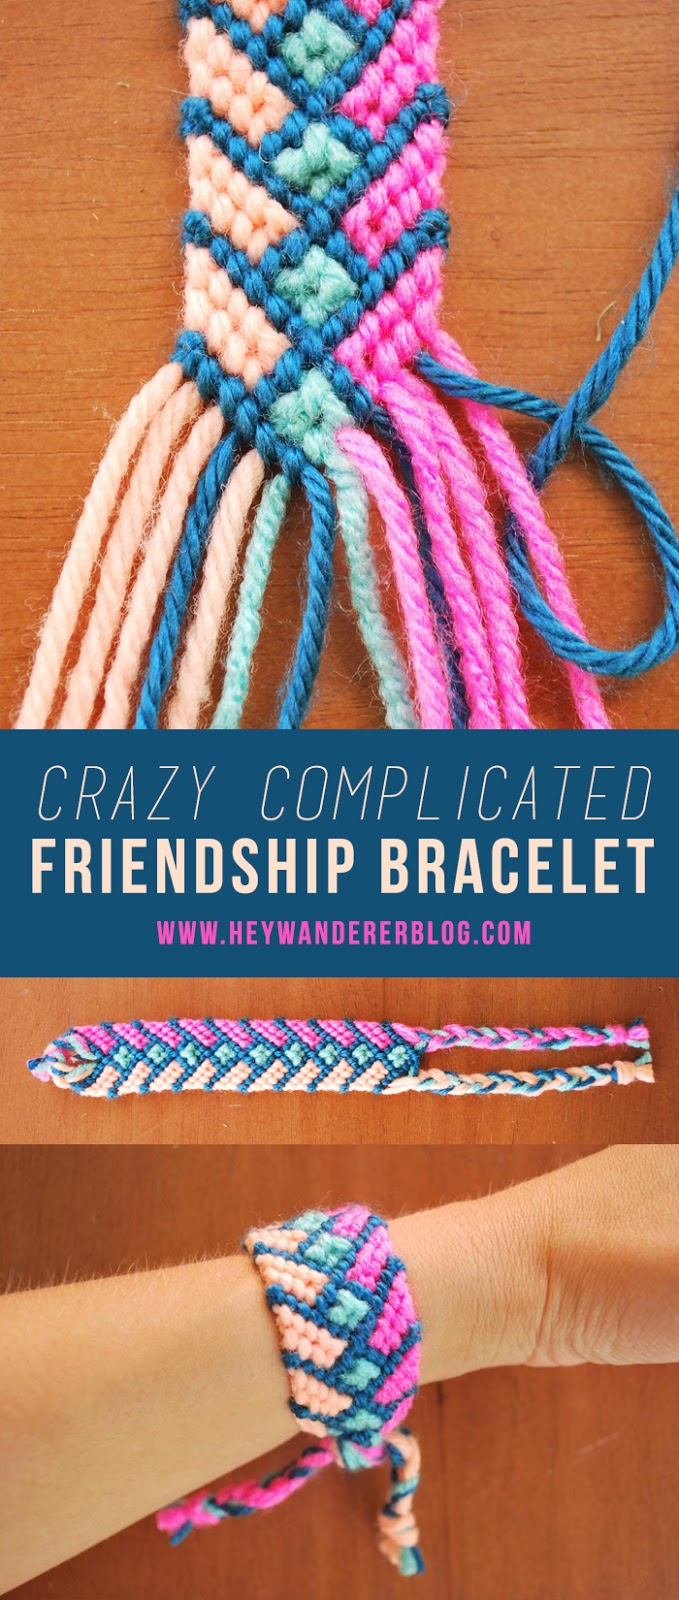 beautiful bracelet bracelets embroidery three jewellery string make floss to friendship ksvhs how with